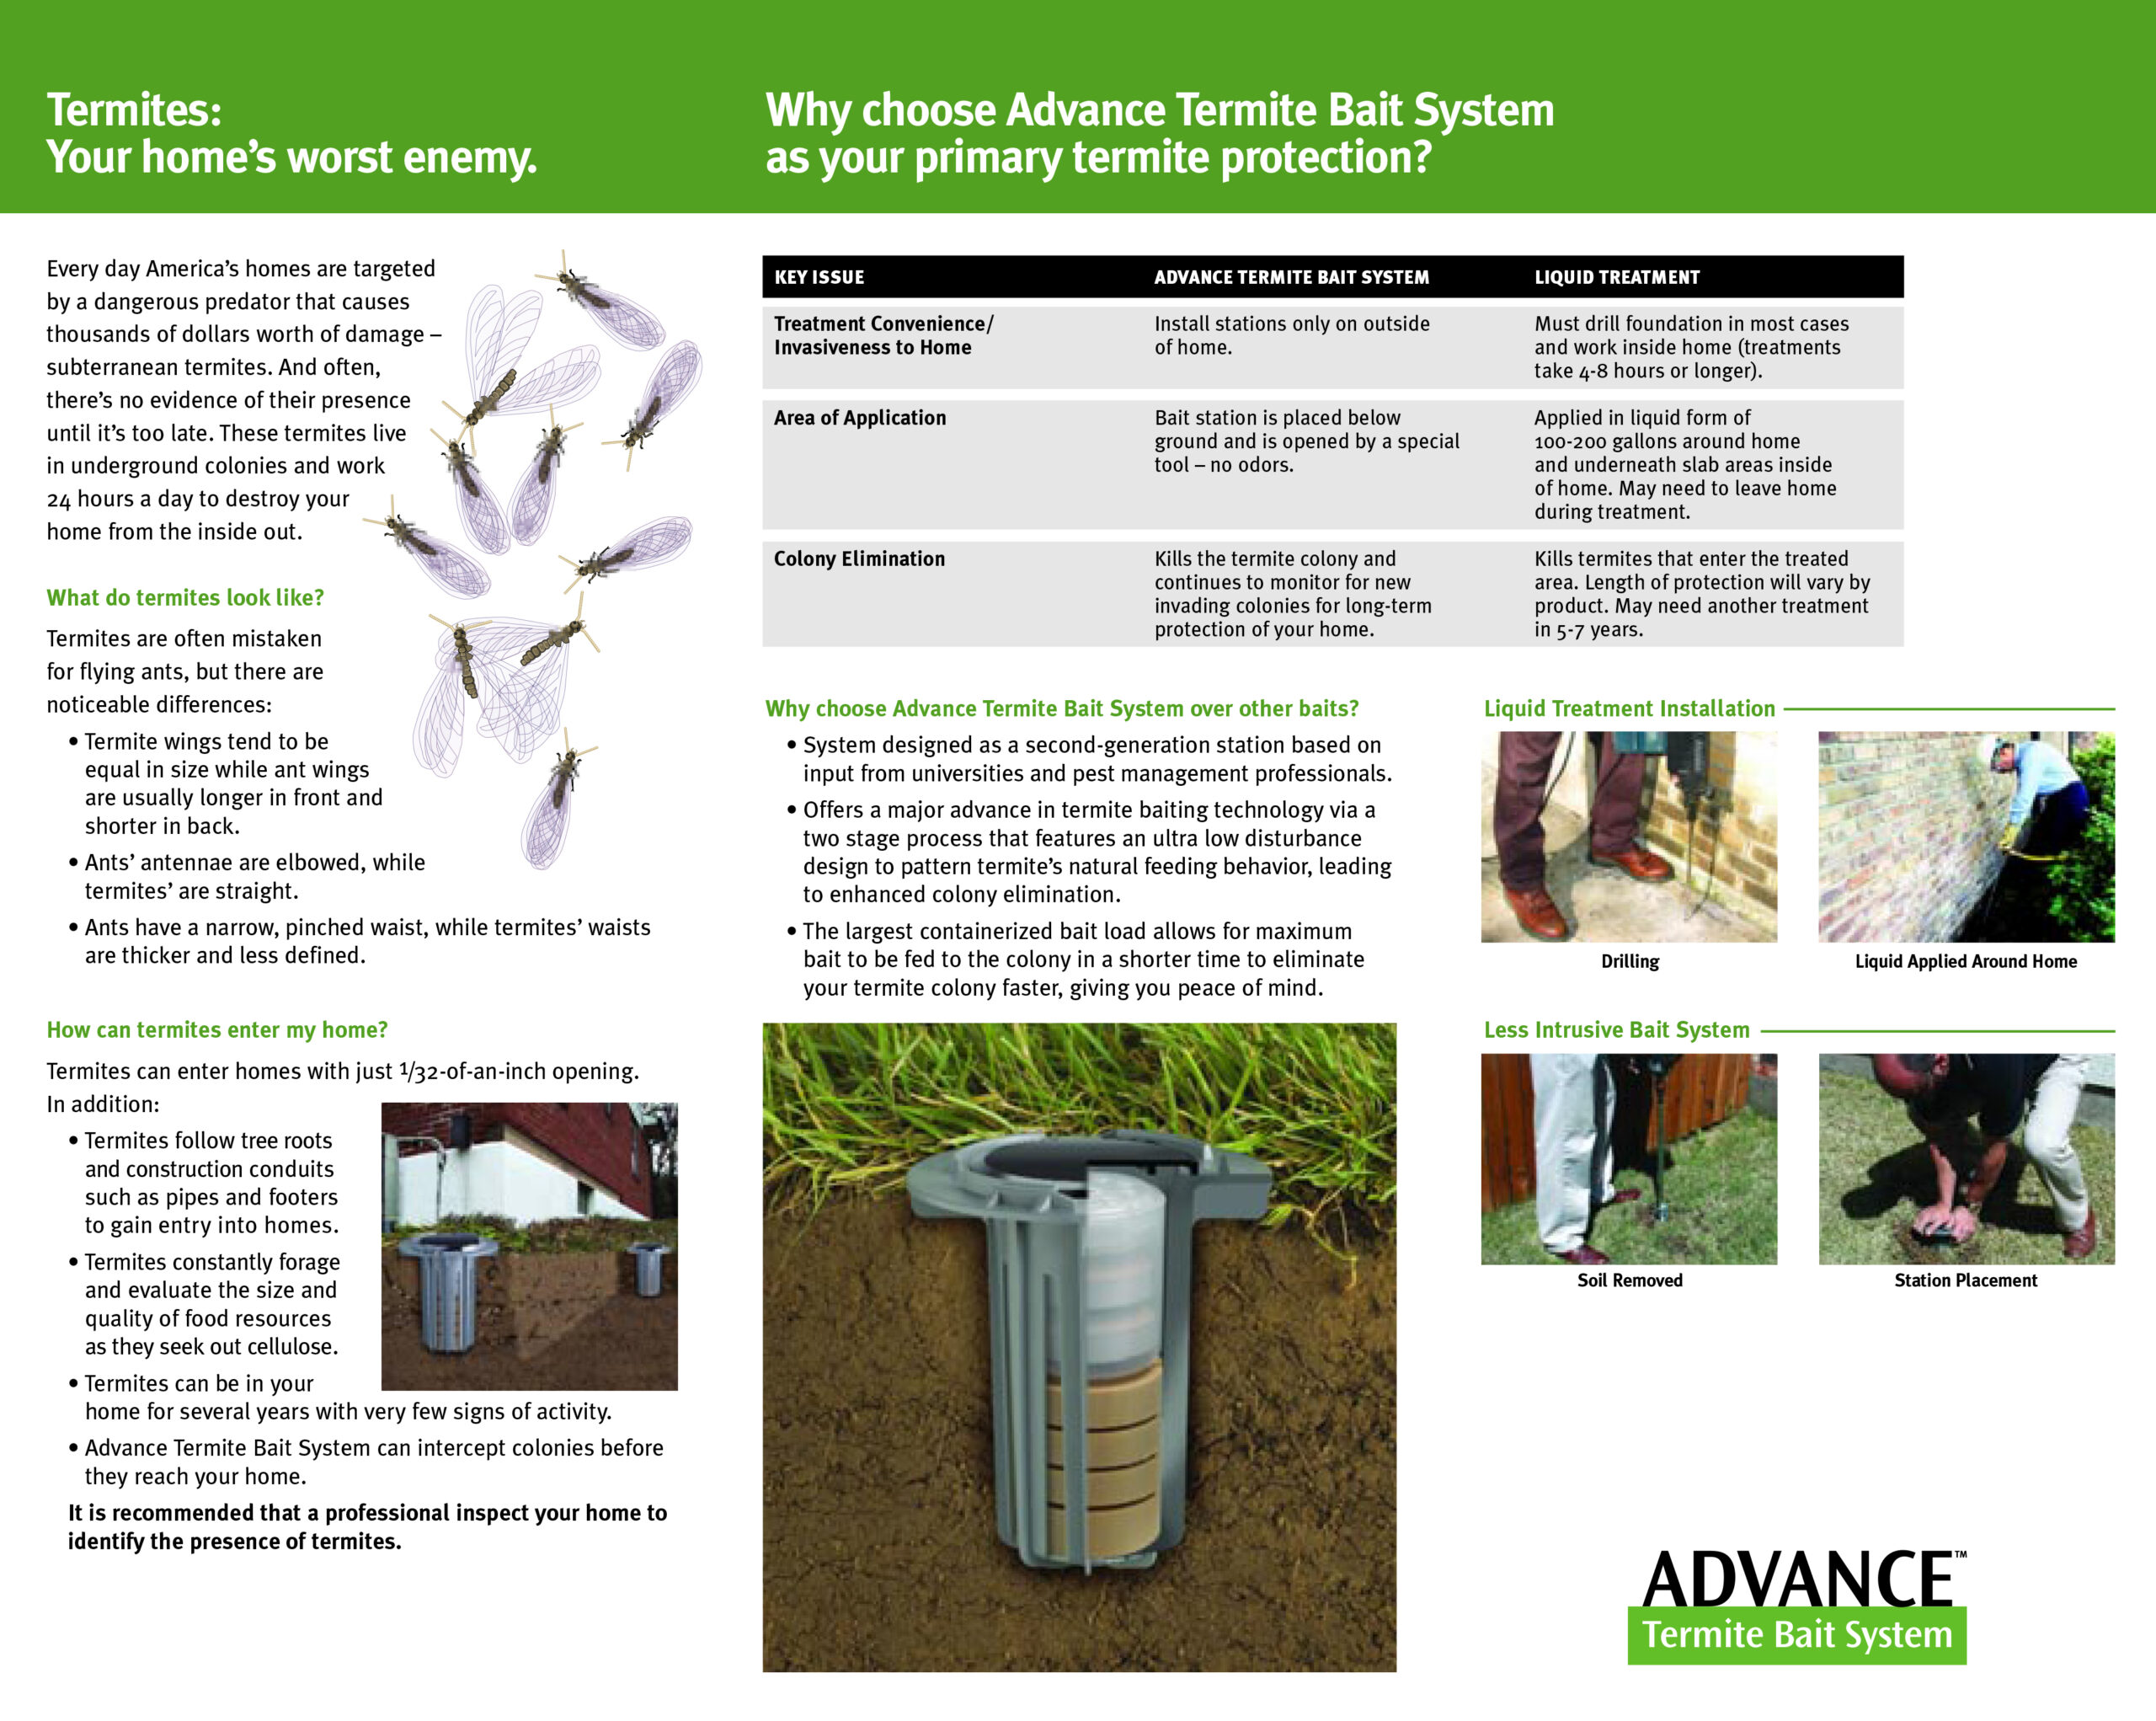 Advanced Termite Bait System